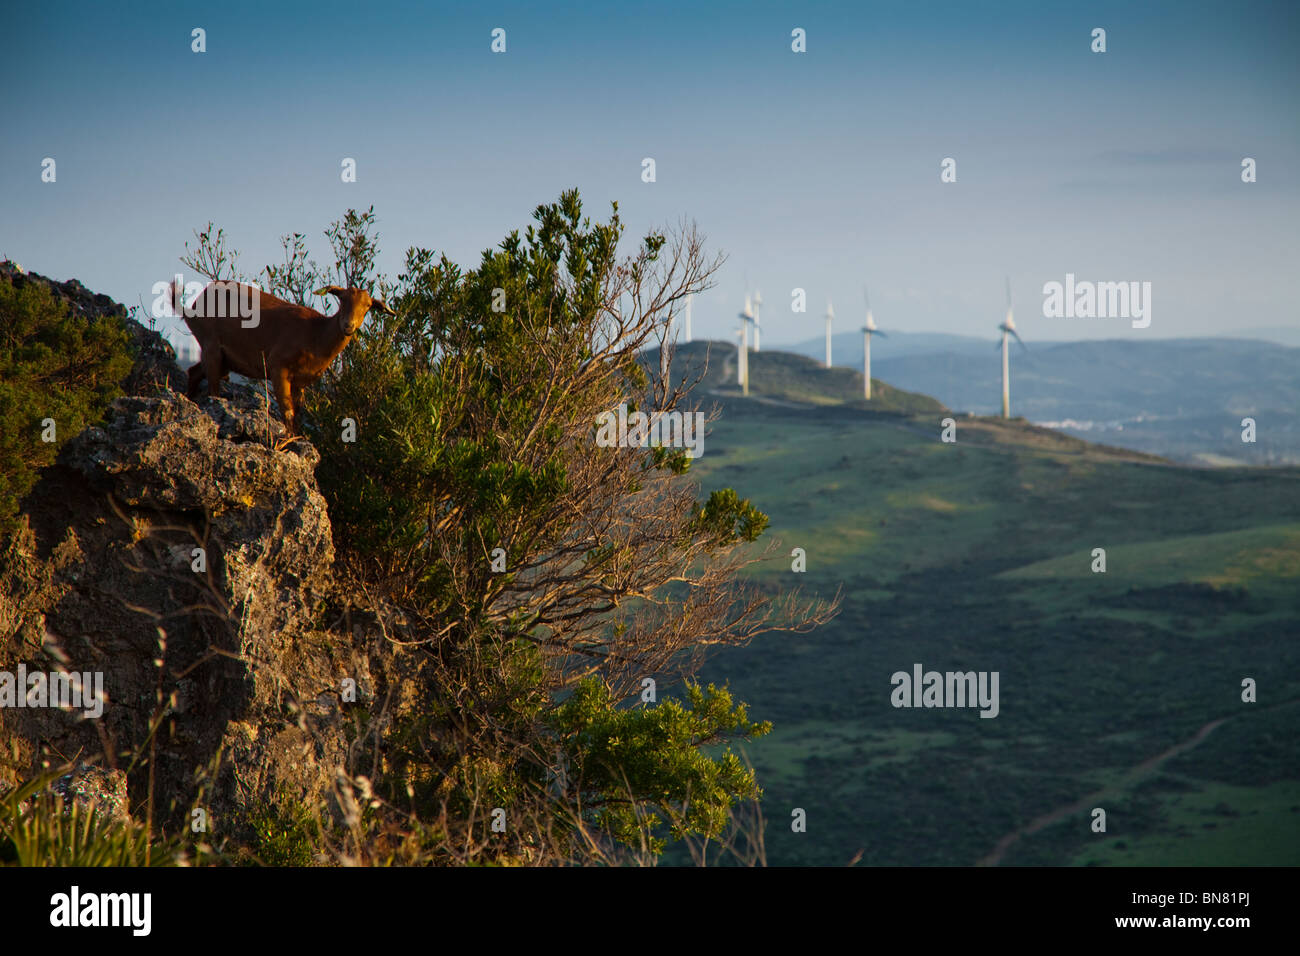 Goat on mountain top Stock Photo